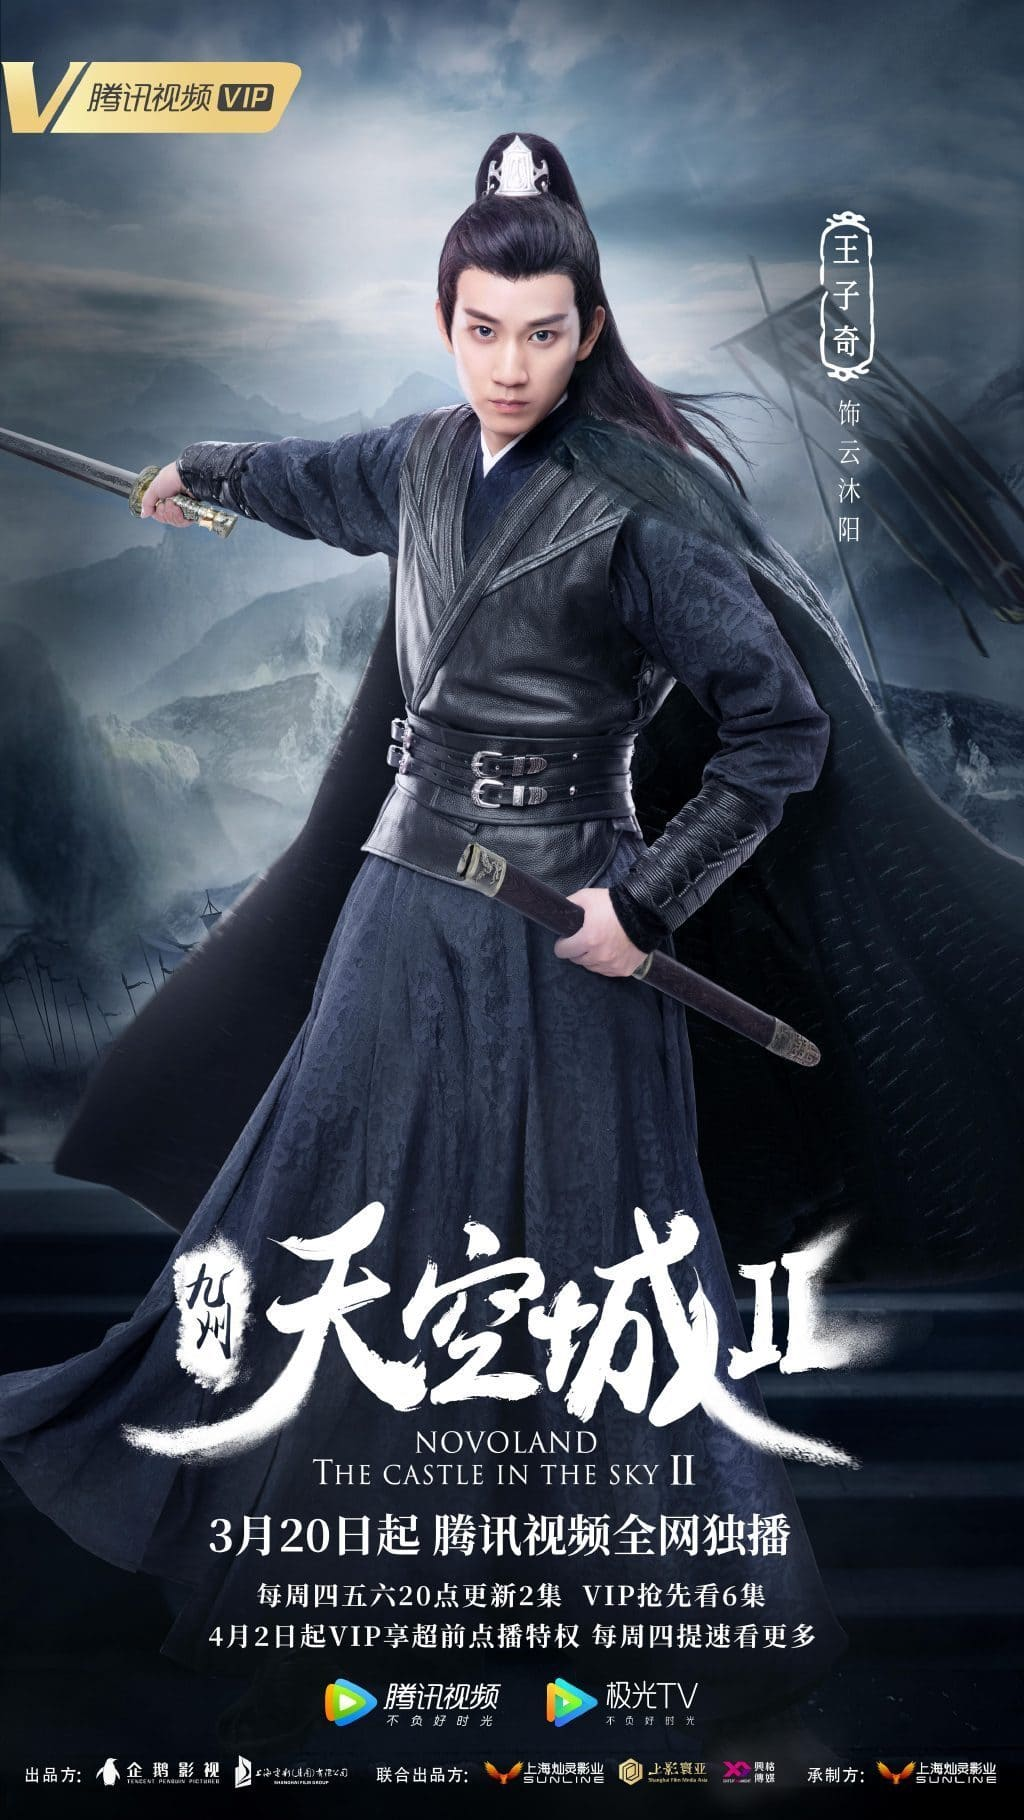 Sinopsis dan Review Drama China Novoland The Castle In The Sky 2 (2020)